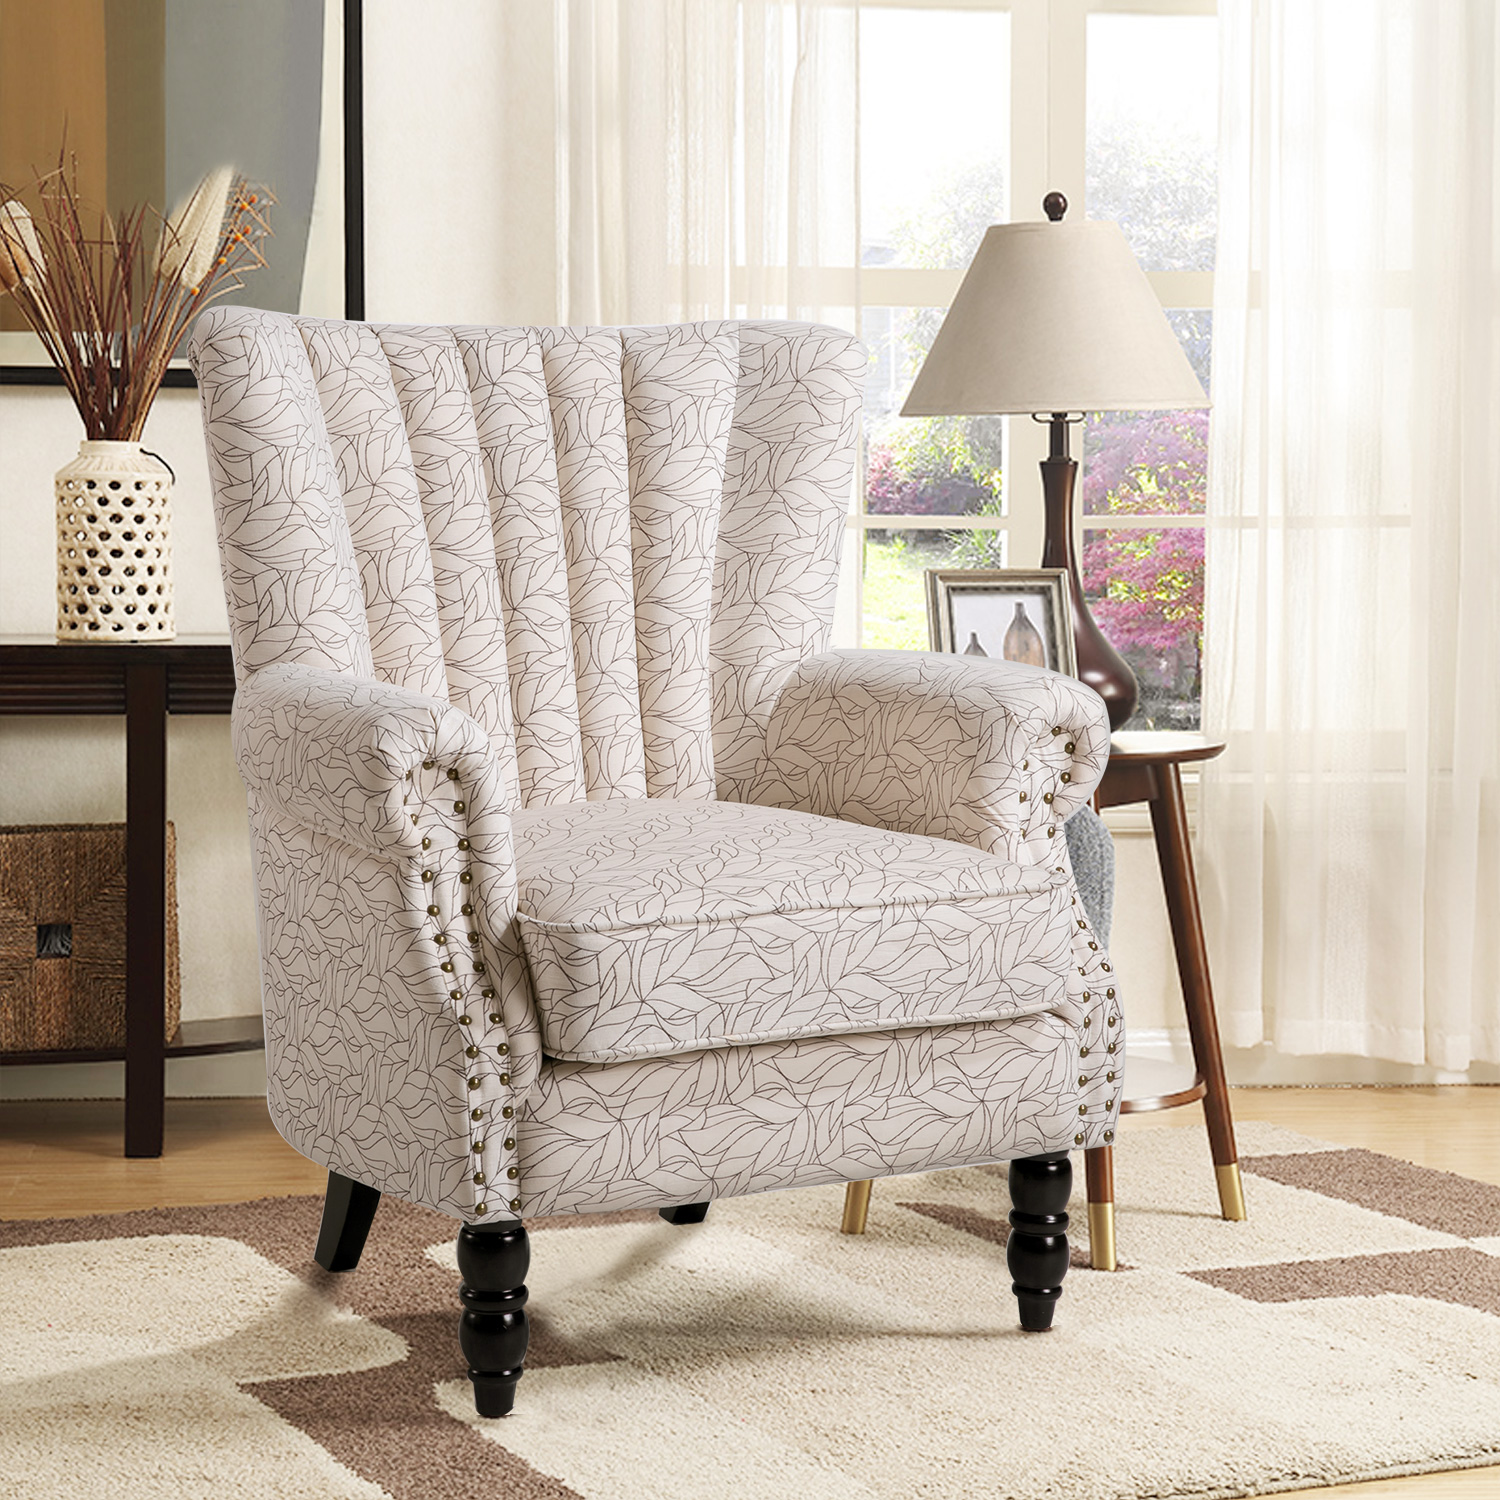 Harper&Bright Designs Rolled Arm Upholstered Accent Chair Armchair, Multiple Colors